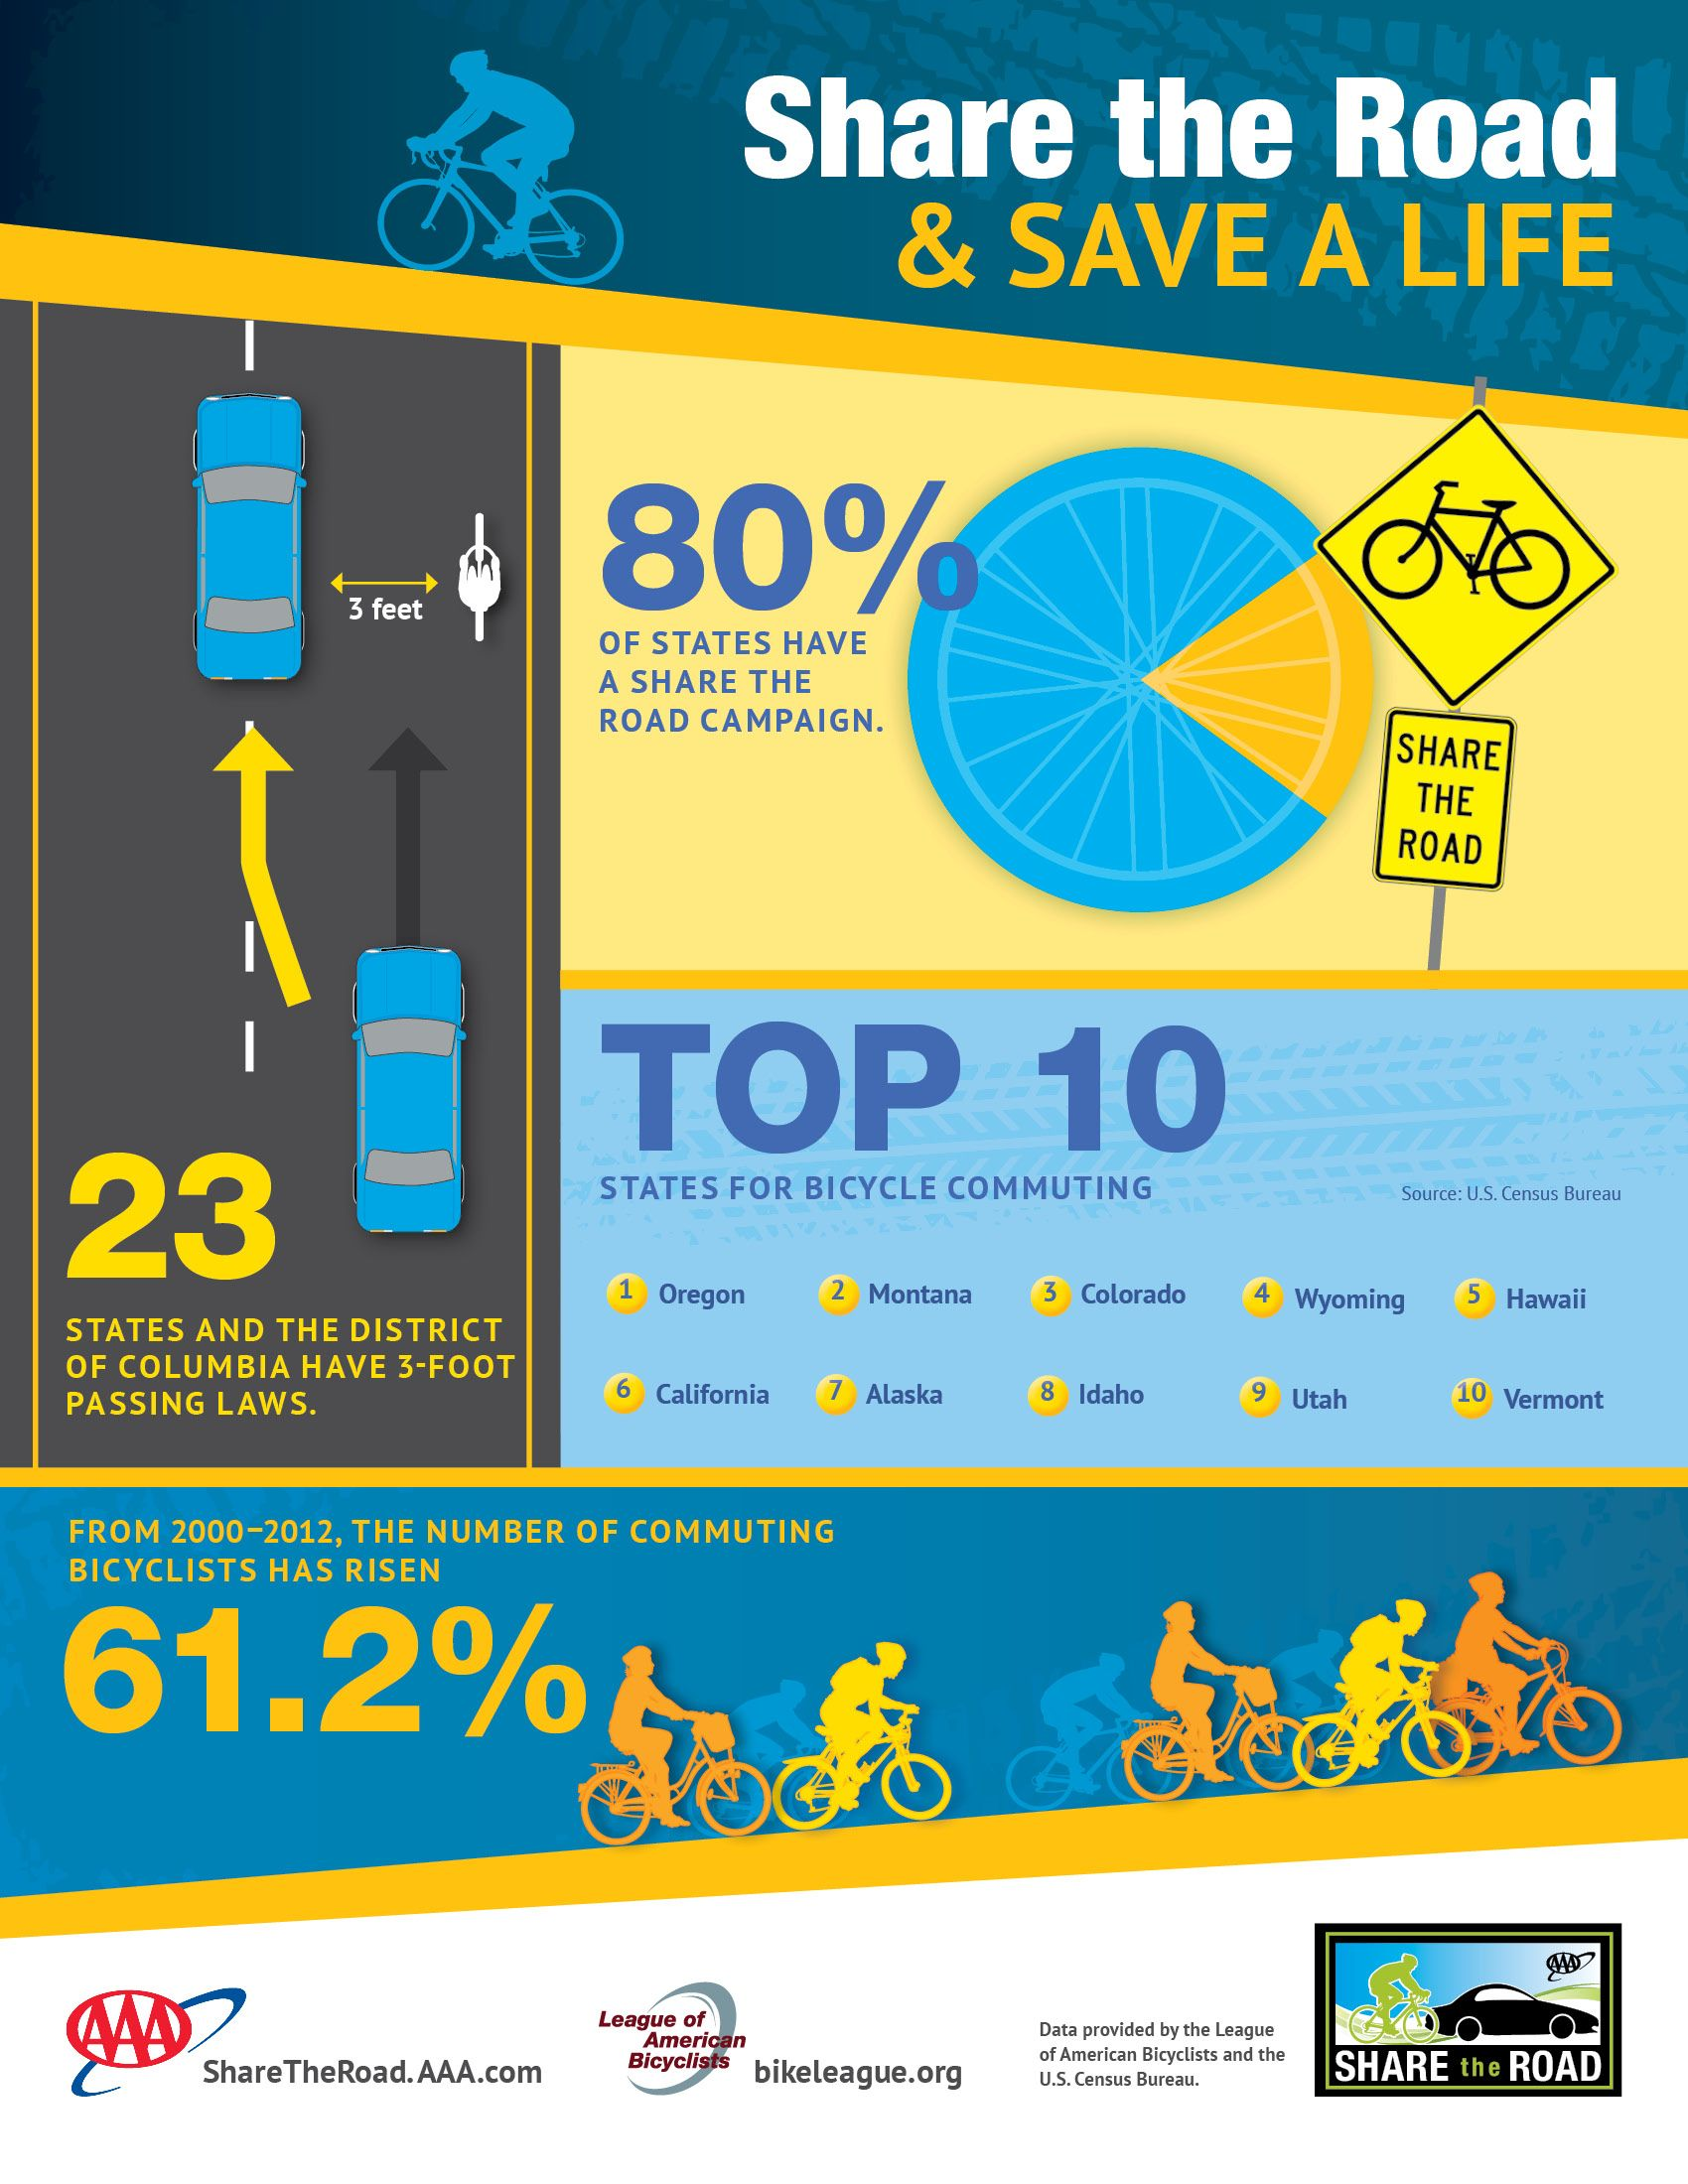 Share the road and save a life // Oregon is the top state